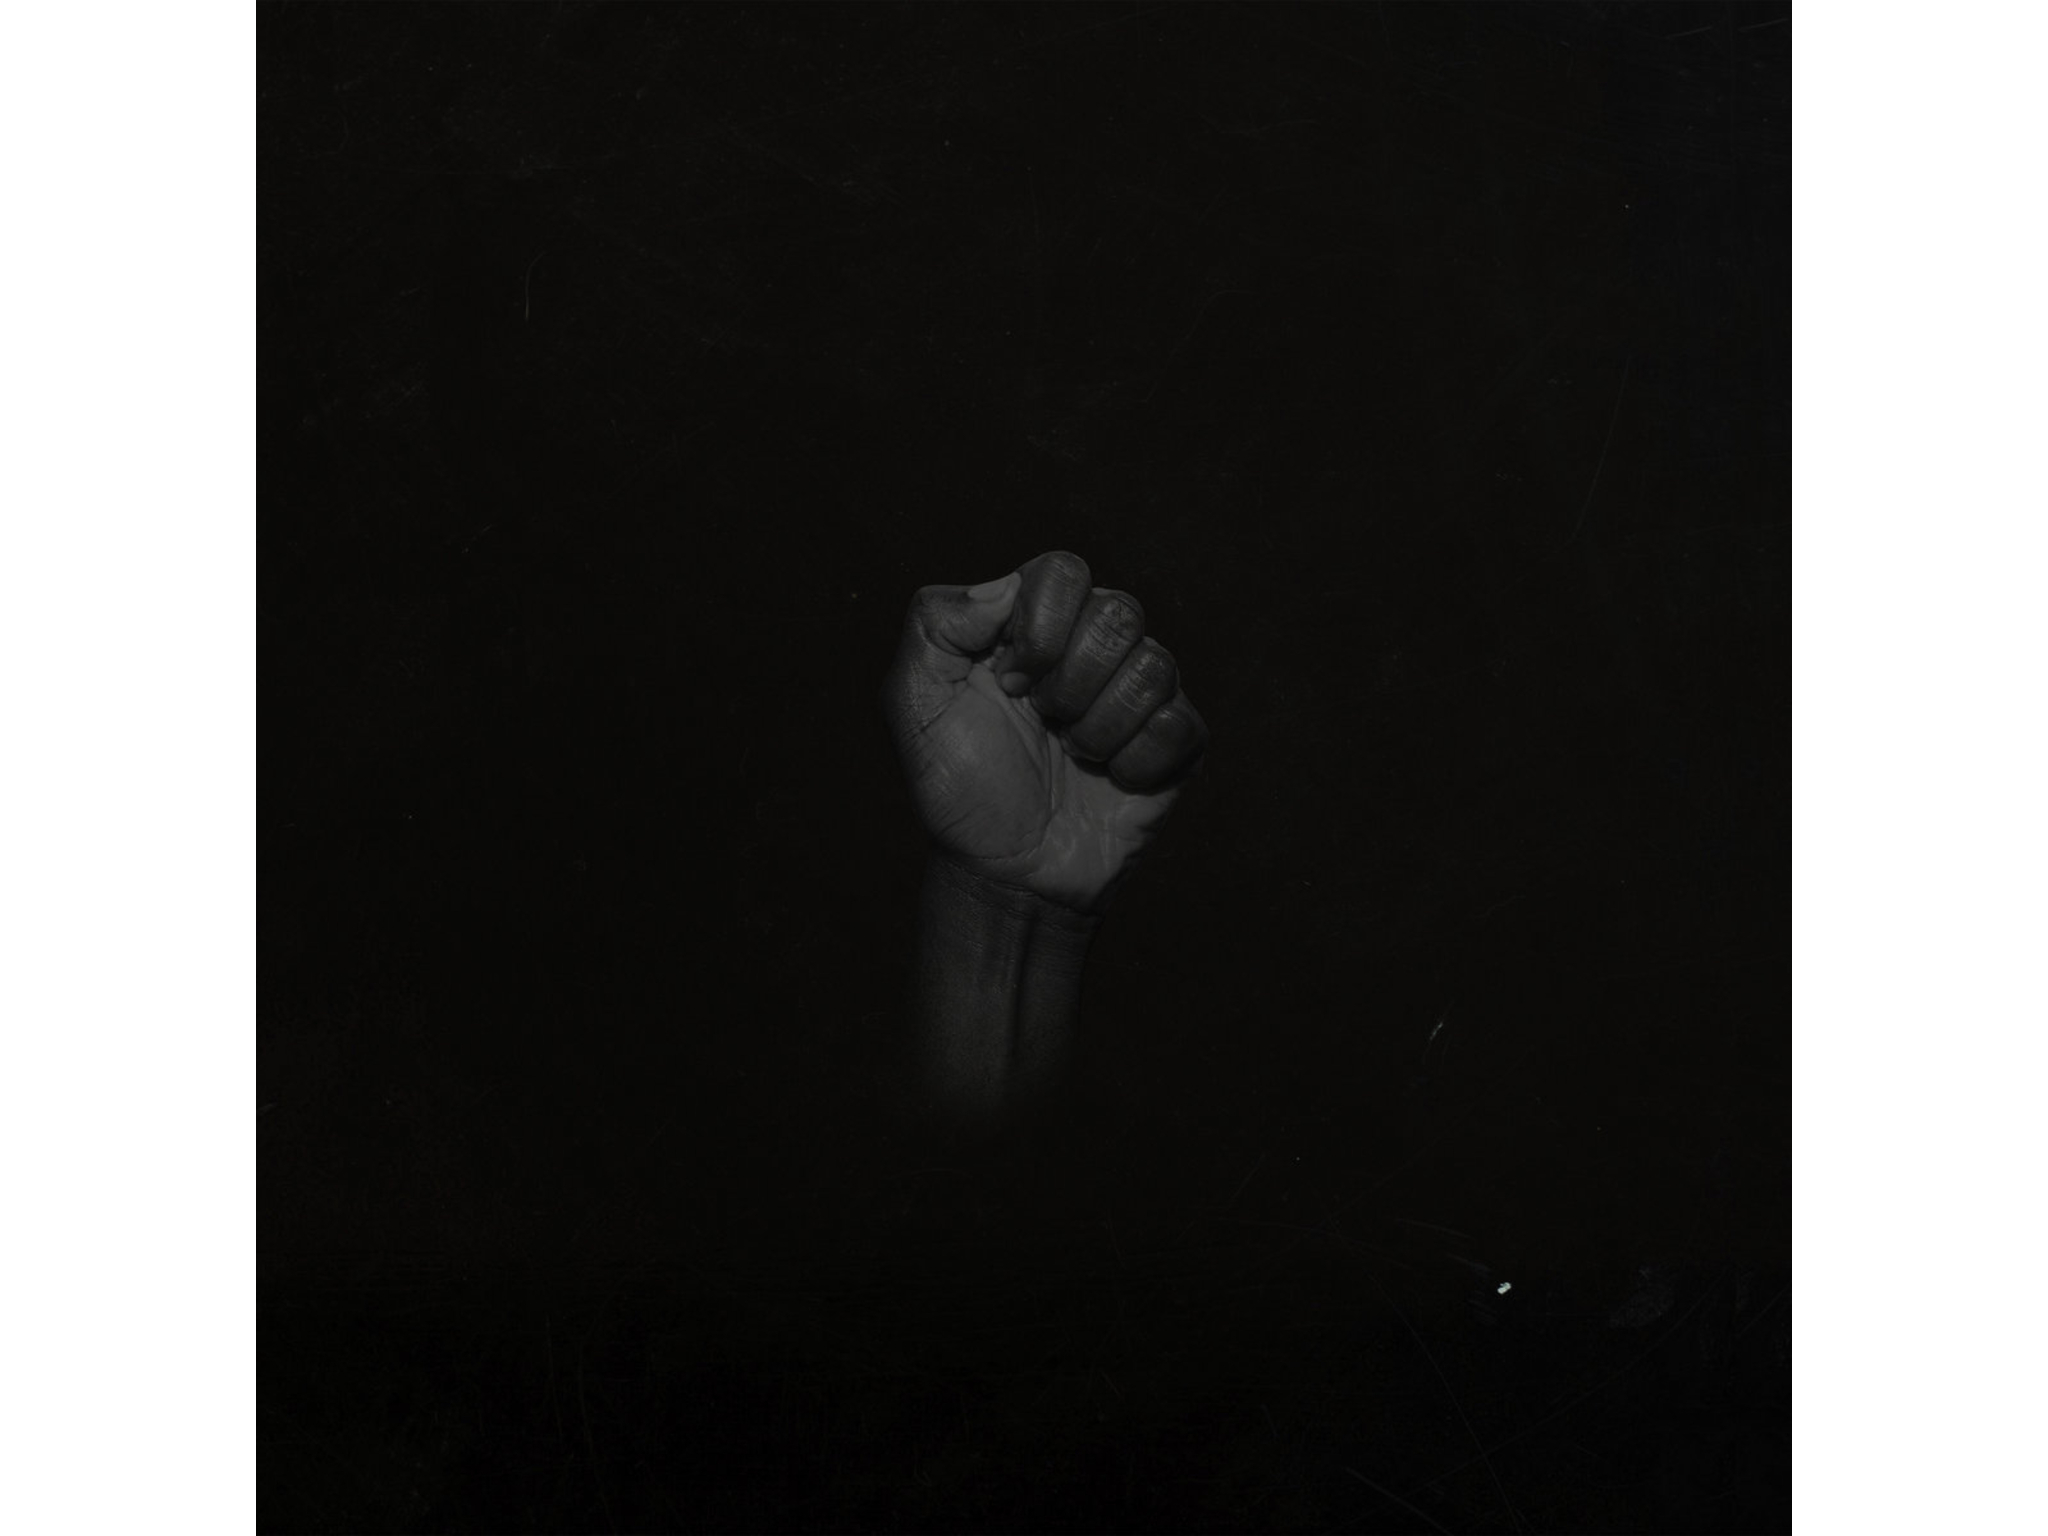 Untitled (Black Is) by SAULT